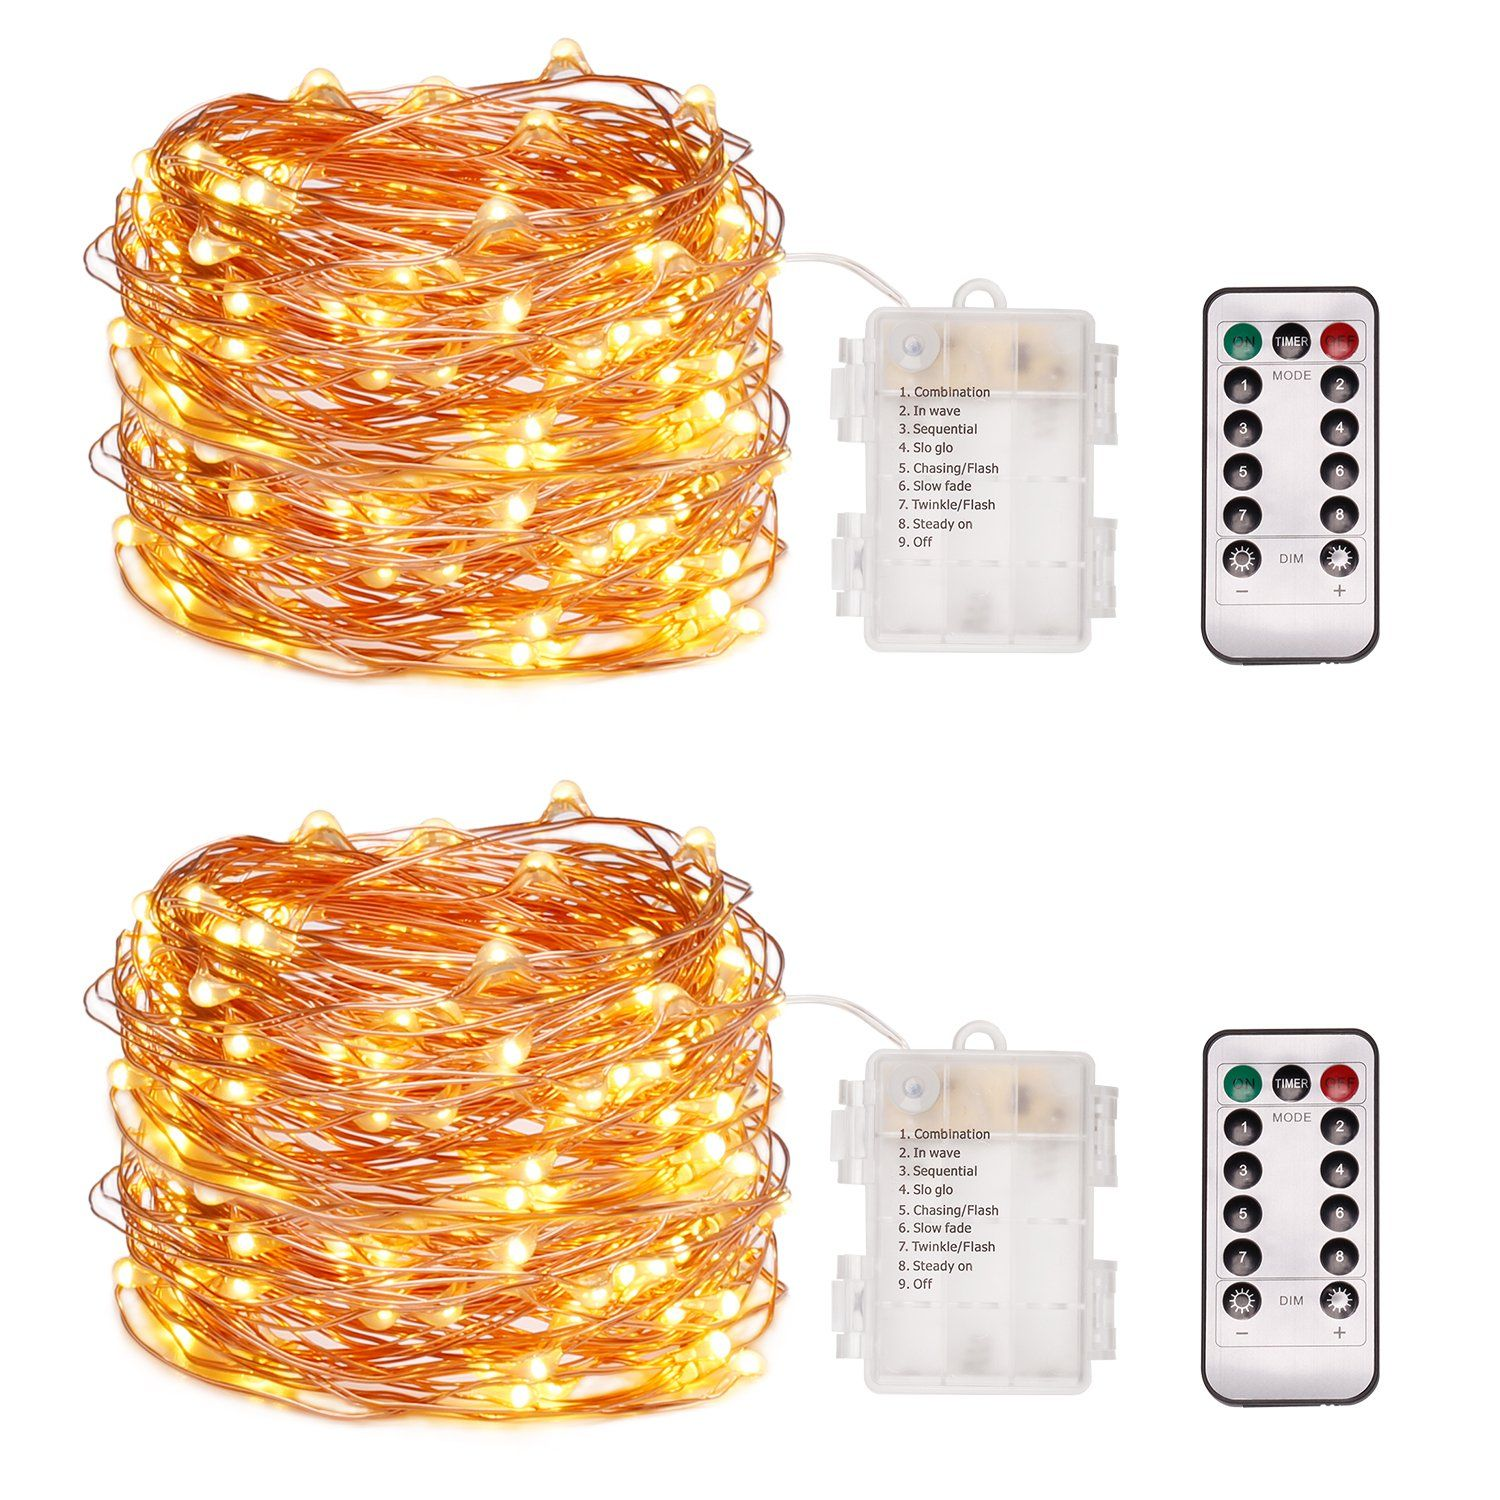 WiHoo Christmas Lights String Lights Dimmable With Remote Control ...